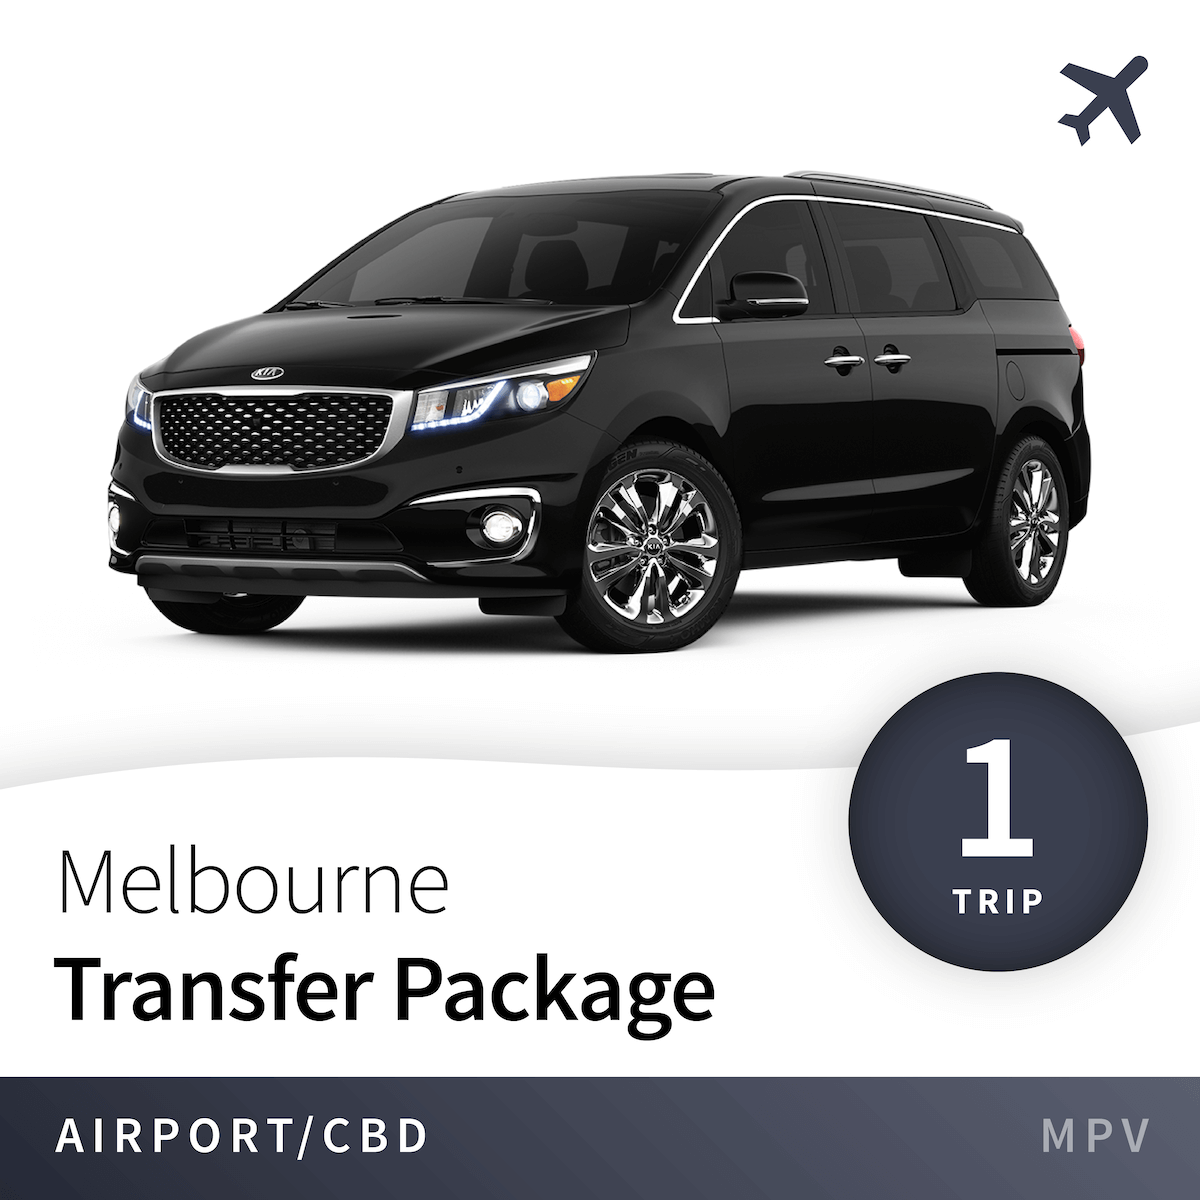 Melbourne Airport Transfer Package - MPV (1 Trip) 4